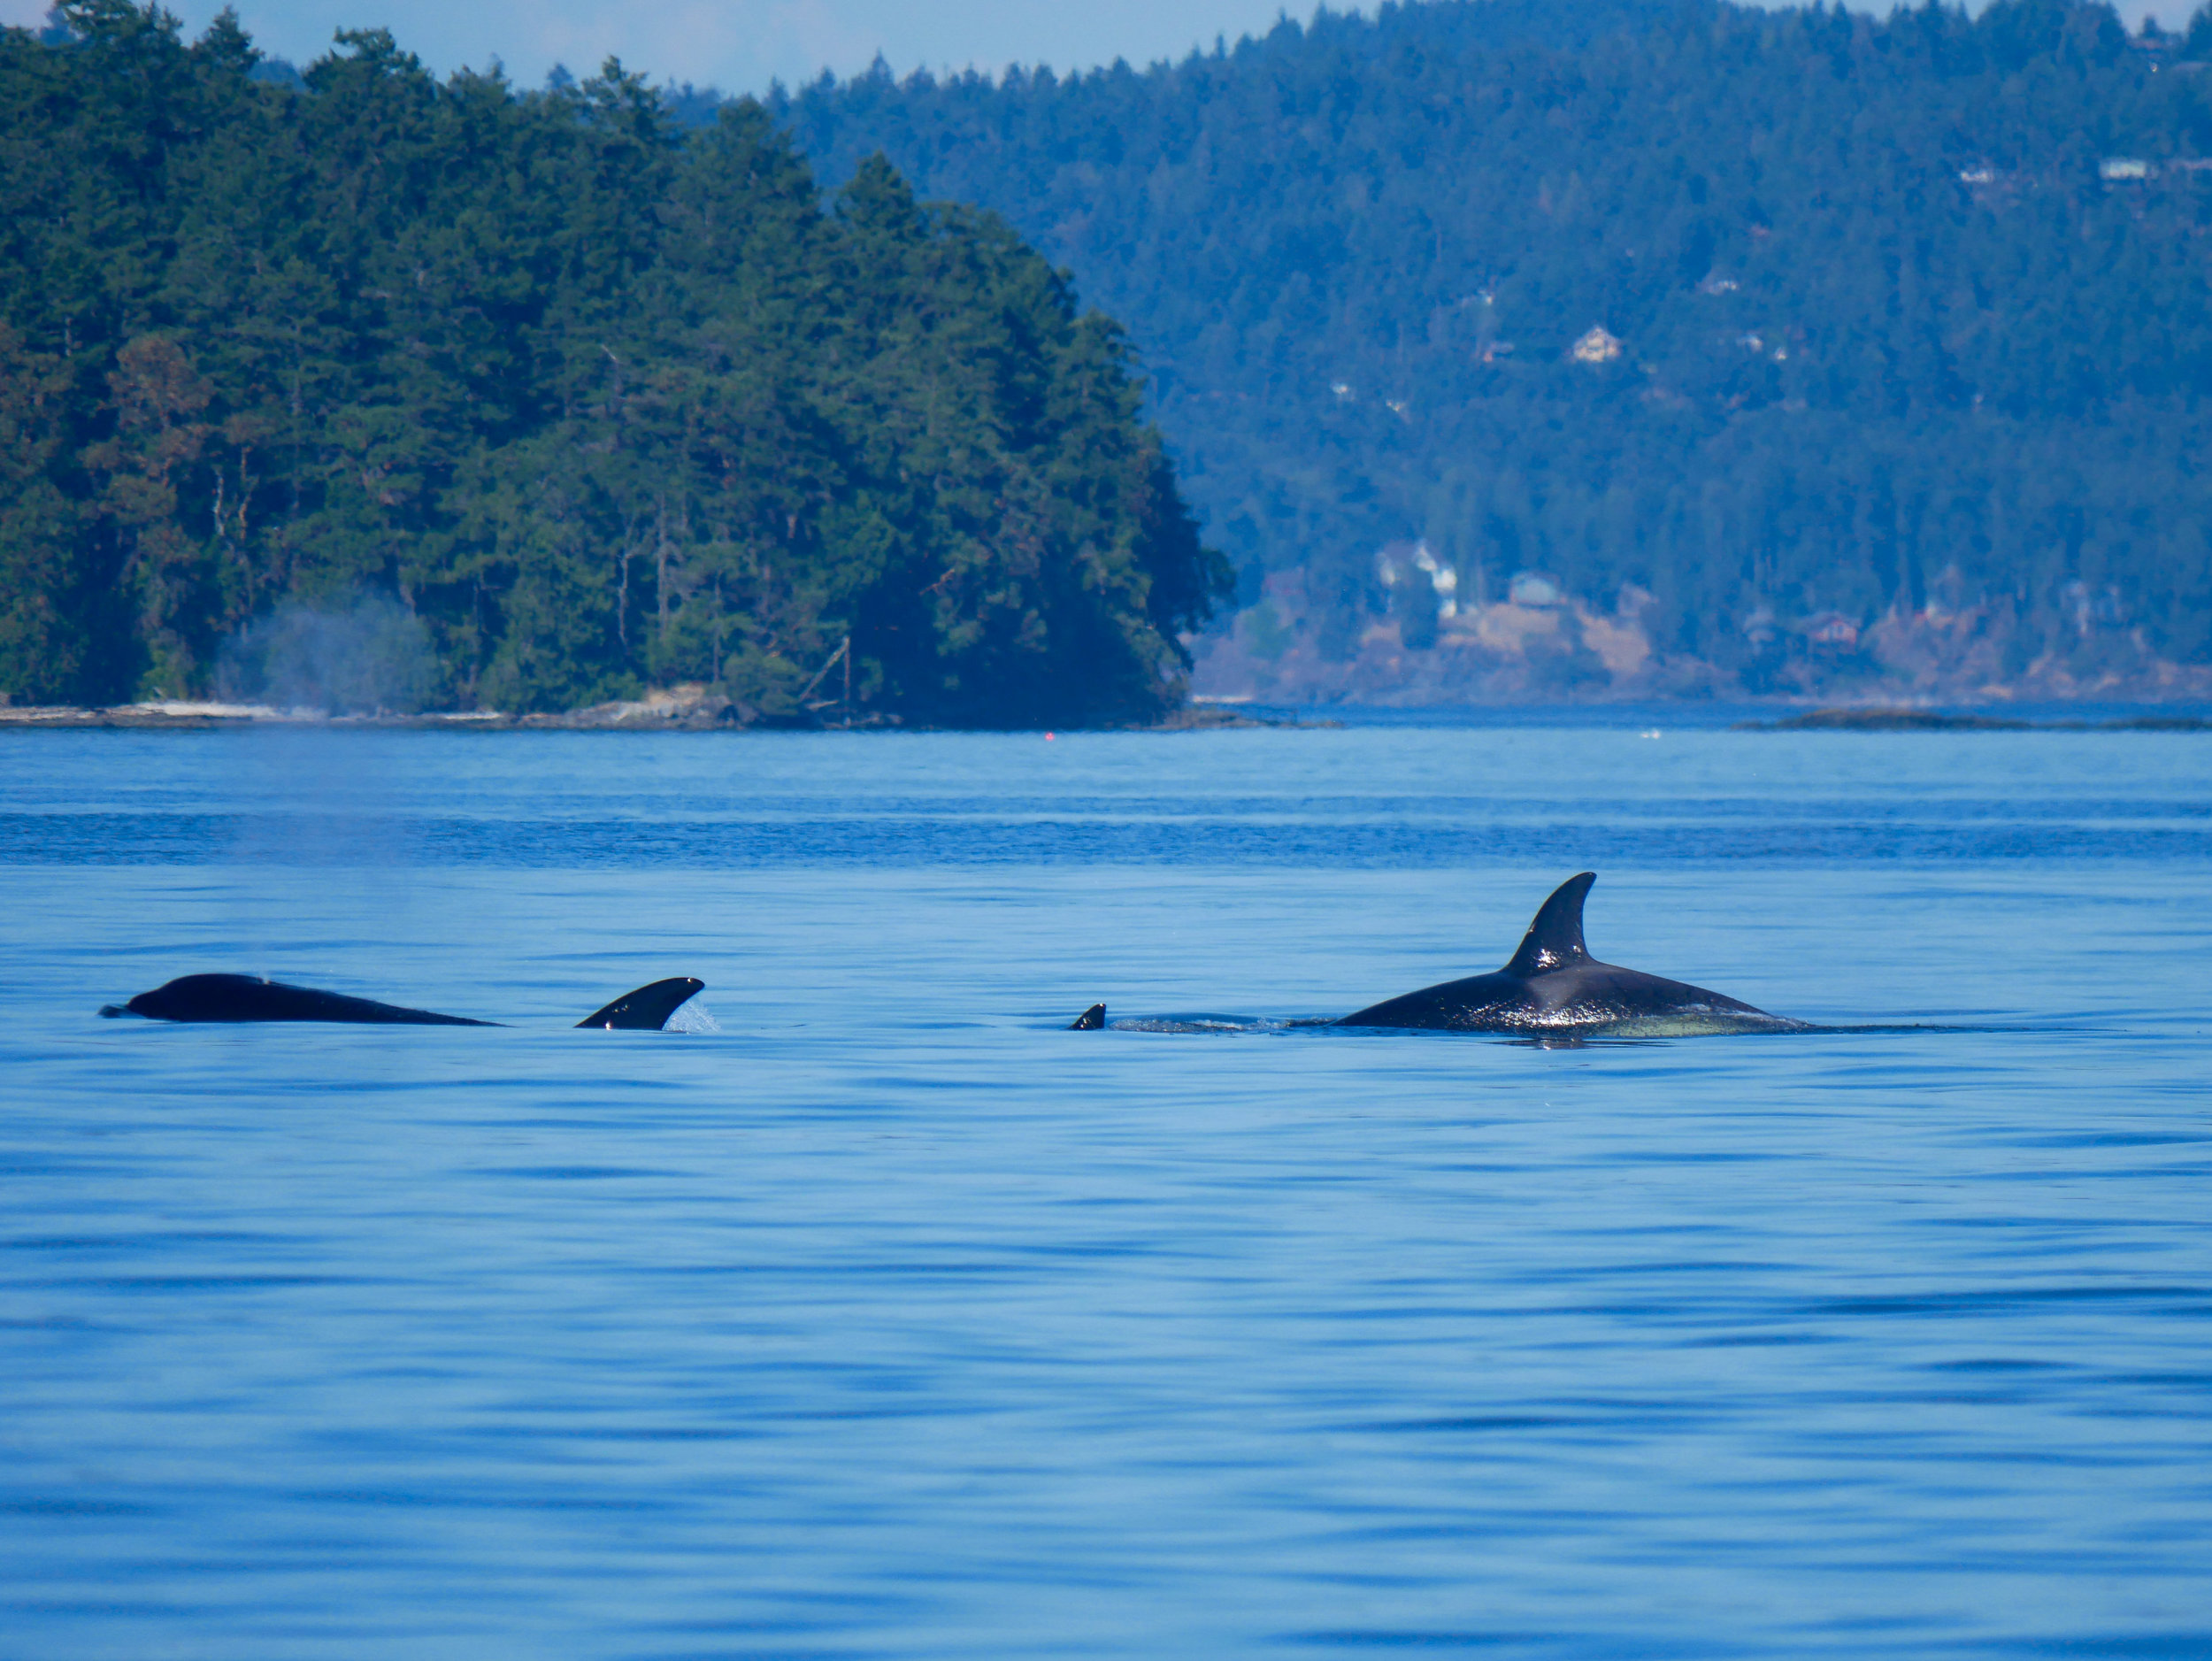 3 members of the T99 pod surfacing. Photo by Alanna Vivani.